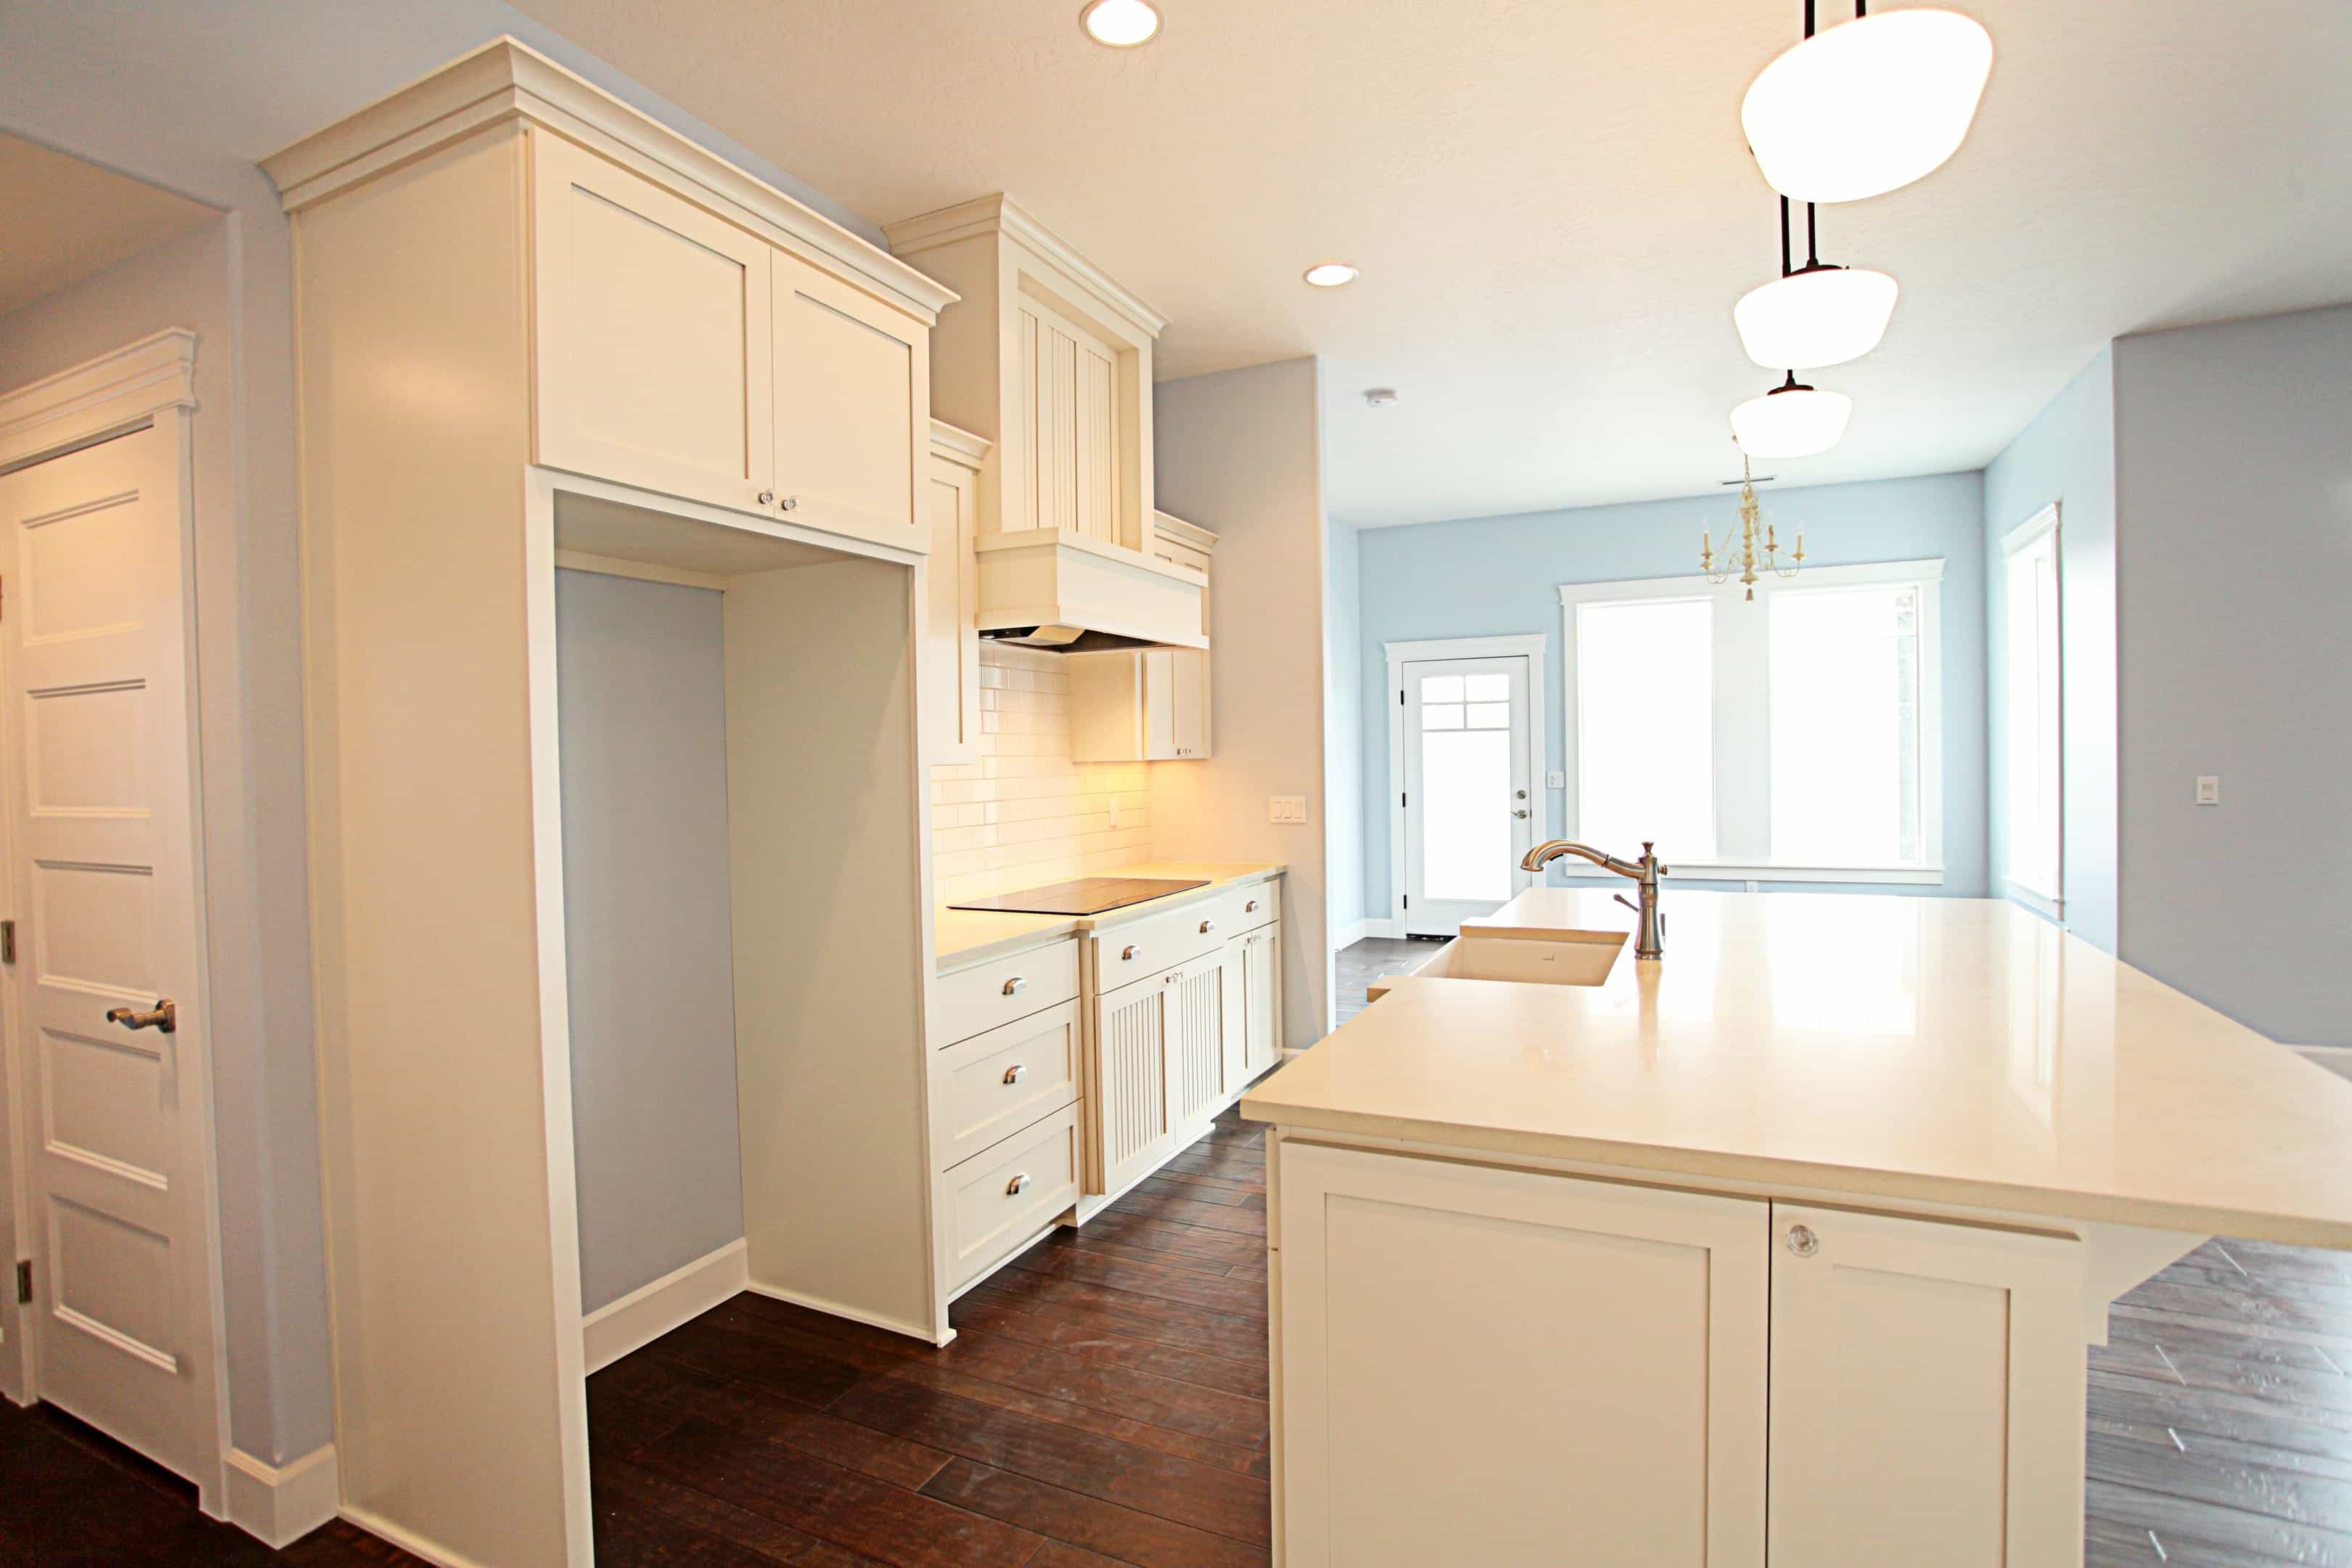 Contemporary Crown Molding For Kitchen Cabinets Shaker Crown Molding Kitchen Cabinets Kitchen Design Ideas